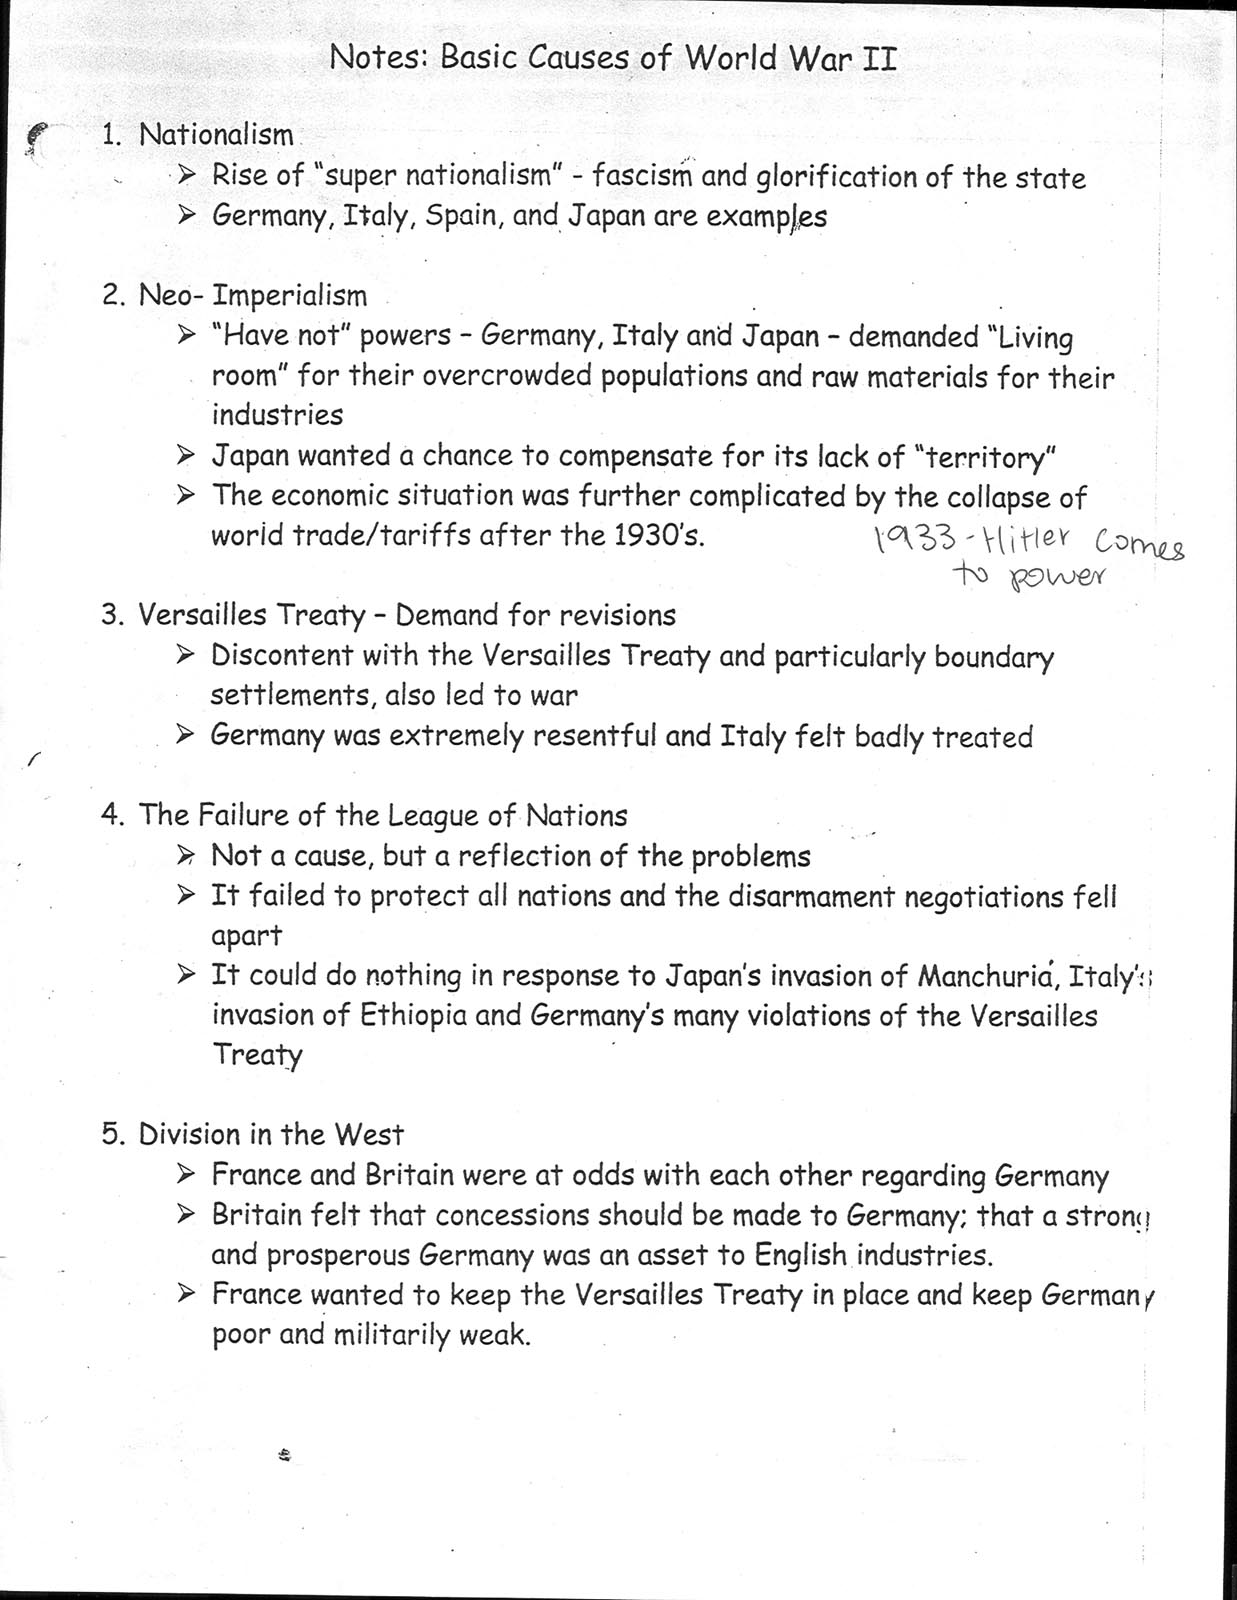 003 Essay Example Ww2 Beautiful World War Ii Prompts Two Conclusion Argumentative Topics Full